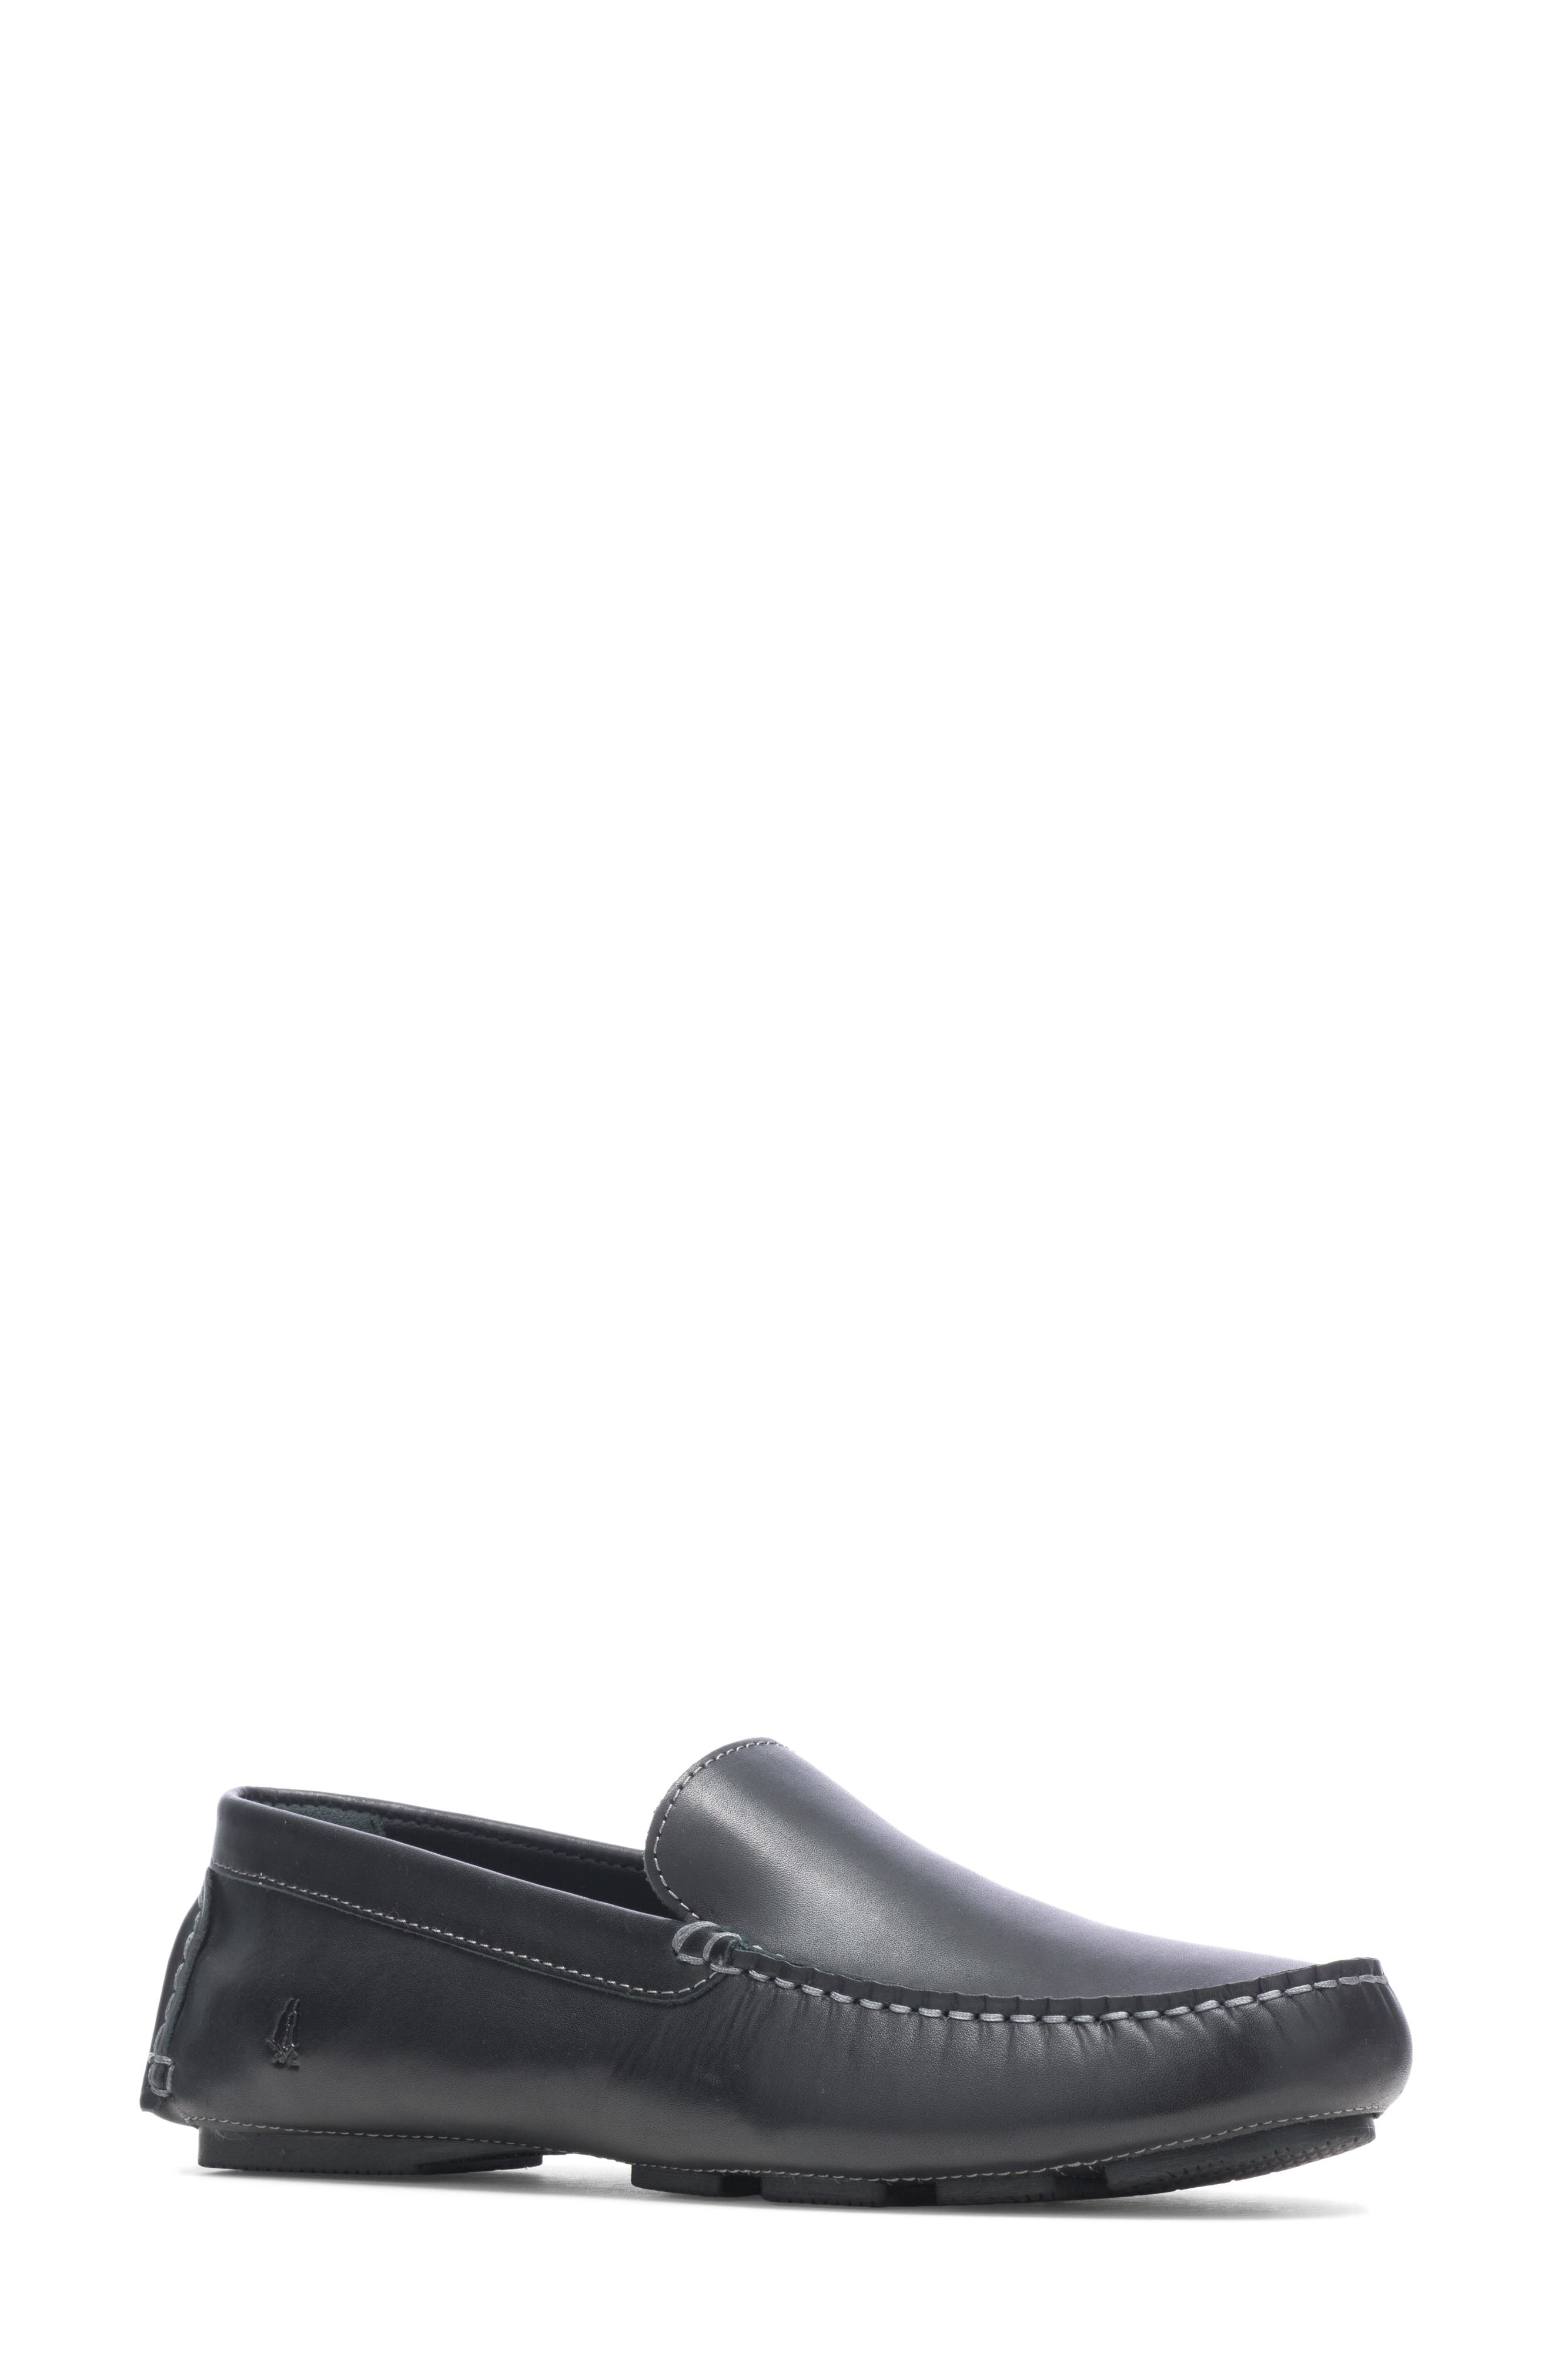 Mens Hush Puppies /'Duke/' Casual Leather Shoes